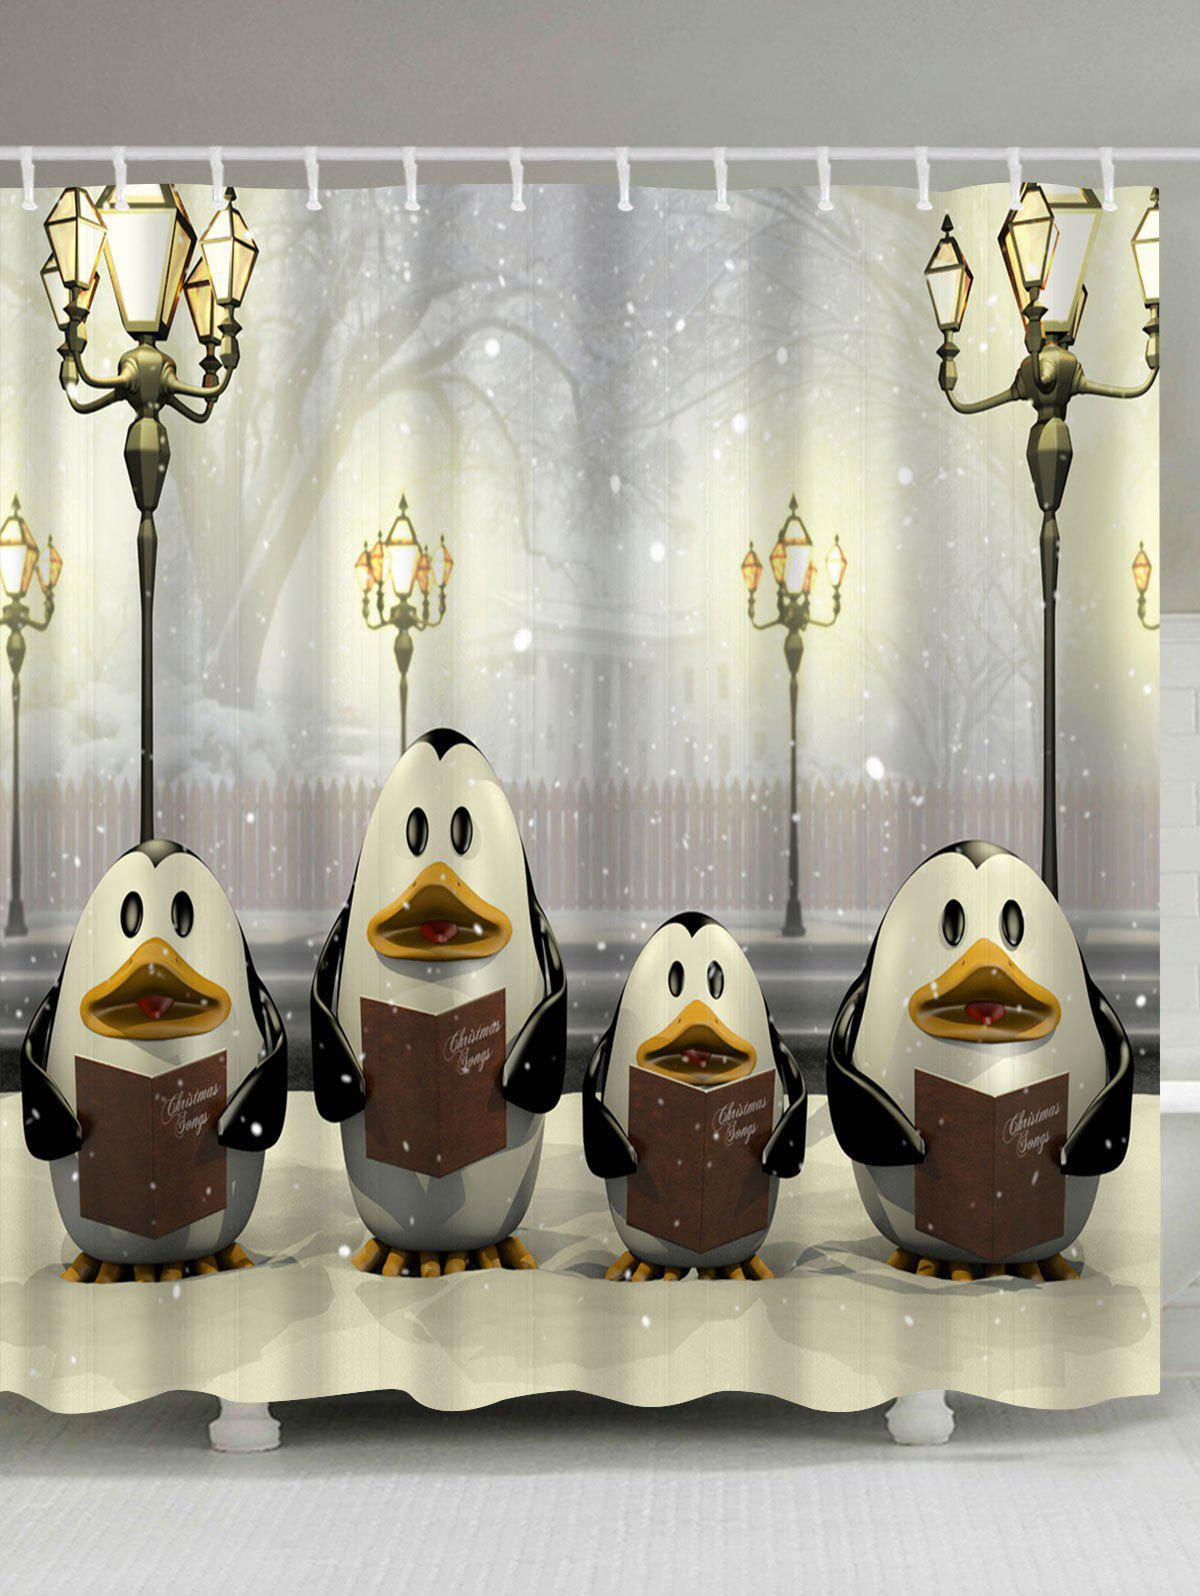 Christmas Street Lamp Penguin Waterproof Shower CurtainHOME<br><br>Size: W71 INCH * L71 INCH; Color: LIGHT YELLOW; Products Type: Shower Curtains; Materials: Polyester; Pattern: Animal; Style: Festival; Number of Hook Holes: W59 inch*L71 inch: 10; W71 inch*L71 inch: 12; W71 inch*L79 inch: 12; Package Contents: 1 x Shower Curtain 1 x Hooks (Set);